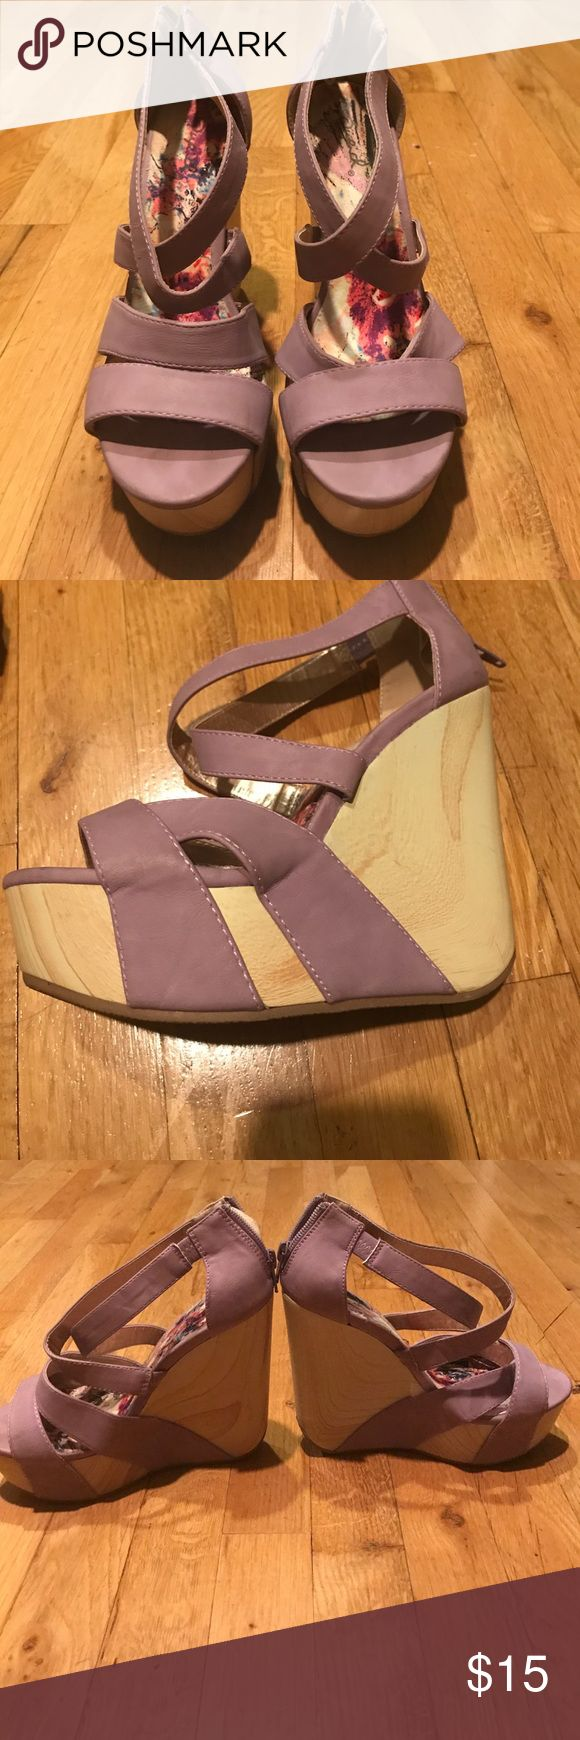 Adorable purple wedges from Shop Hopes! Super cute and comfortable! Minimal wear! I am unsure what size they are as it is not written on the show. They are either a 5.5 or 6! If you are interested I would be happy to measure them Shop Hopes Shoes Wedges